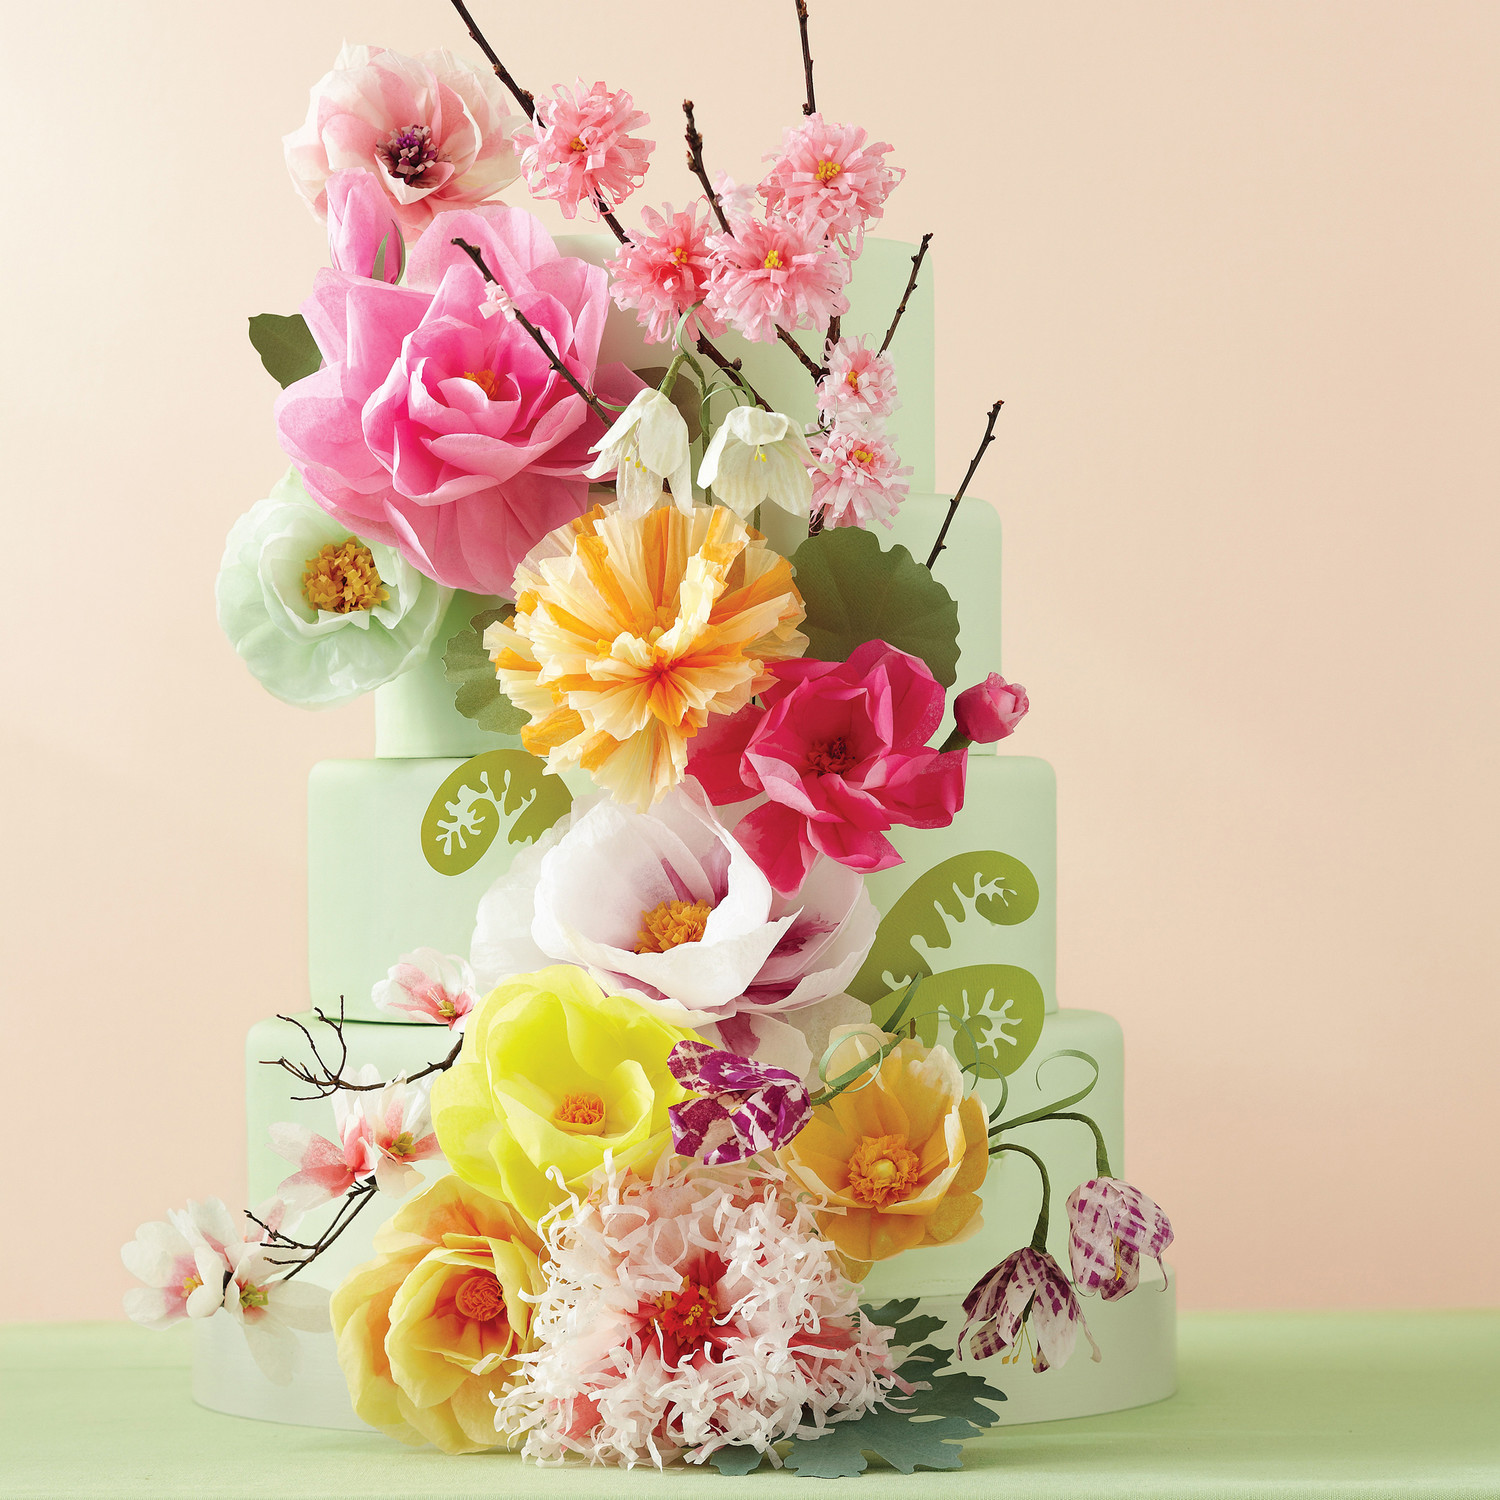 Flower Wedding Cupcake Ideas: 11 DIY Wedding Cake Ideas That Will Transform Your Tiers